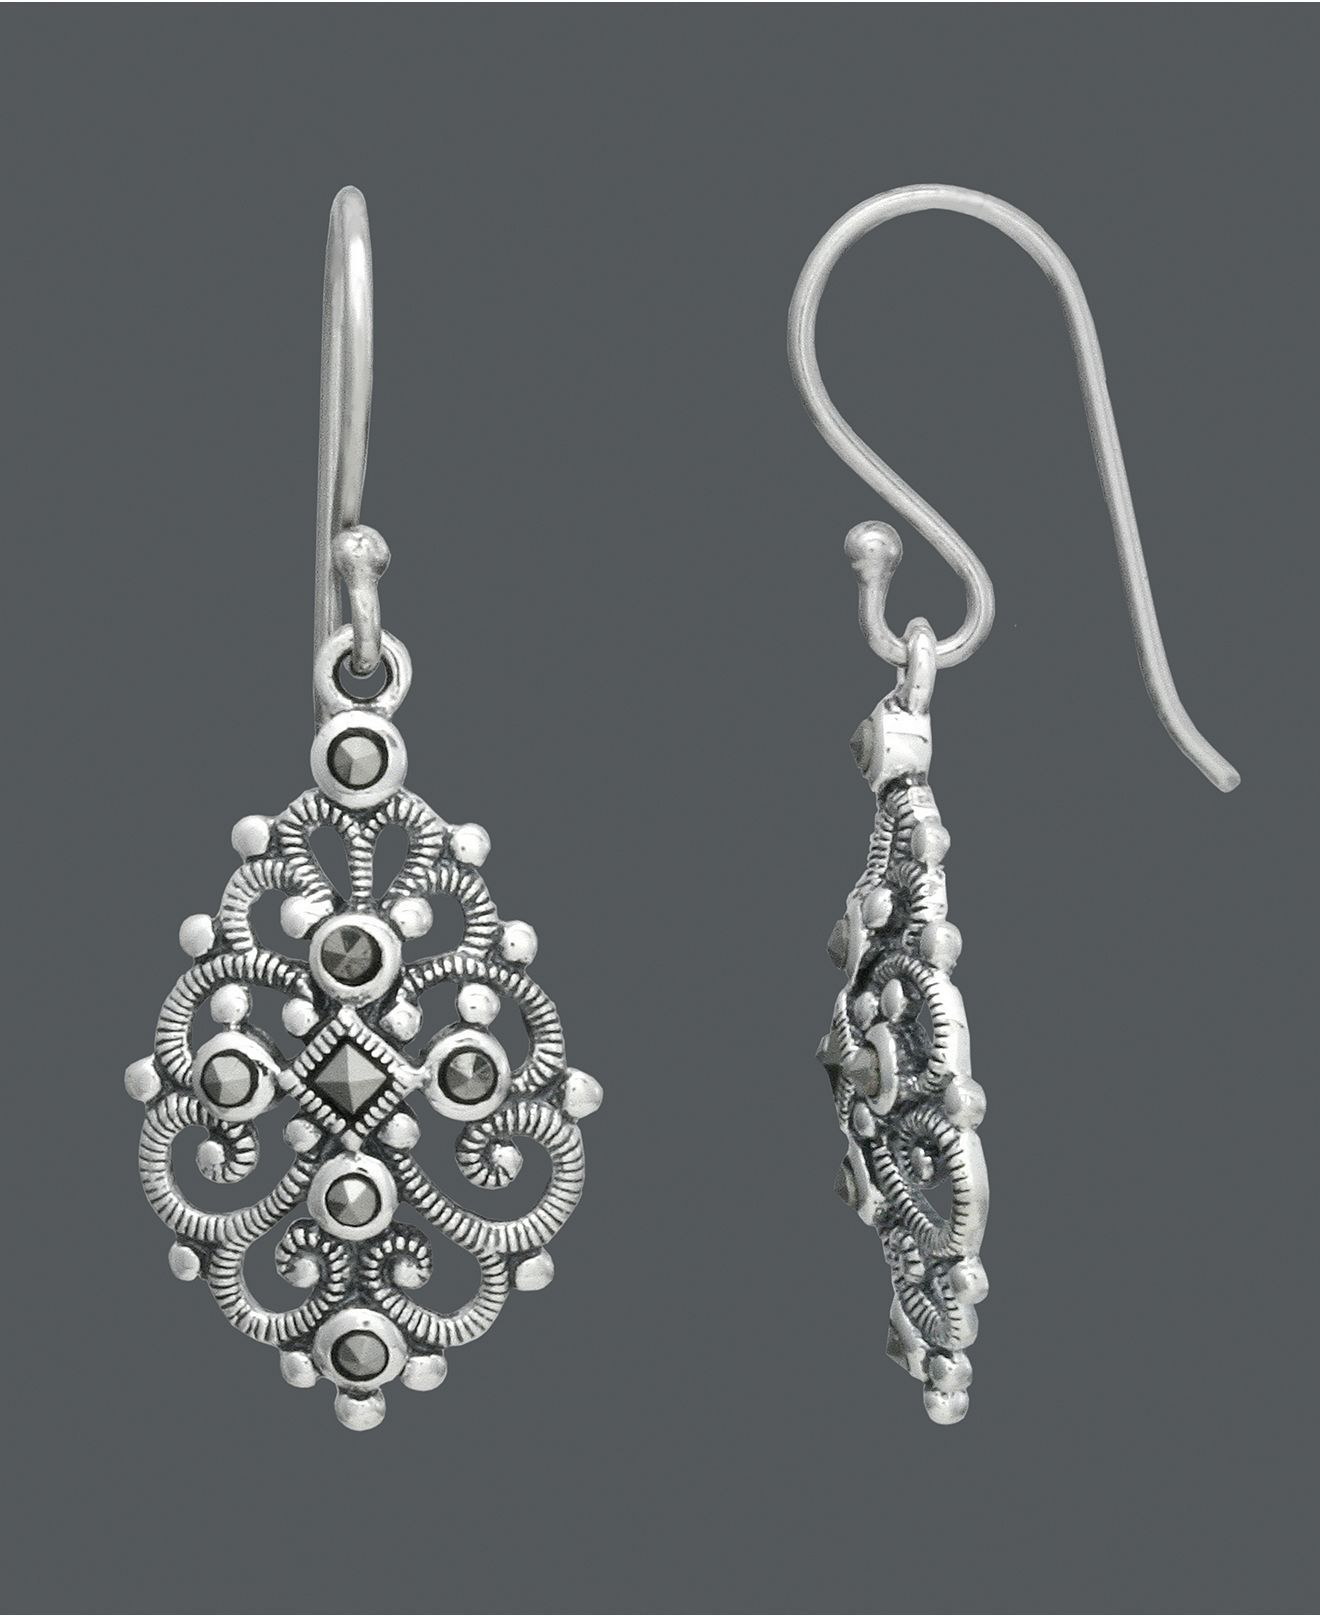 Genevieve Grace Sterling Silver Earrings Marcasite Filigree Teardrop Macy S